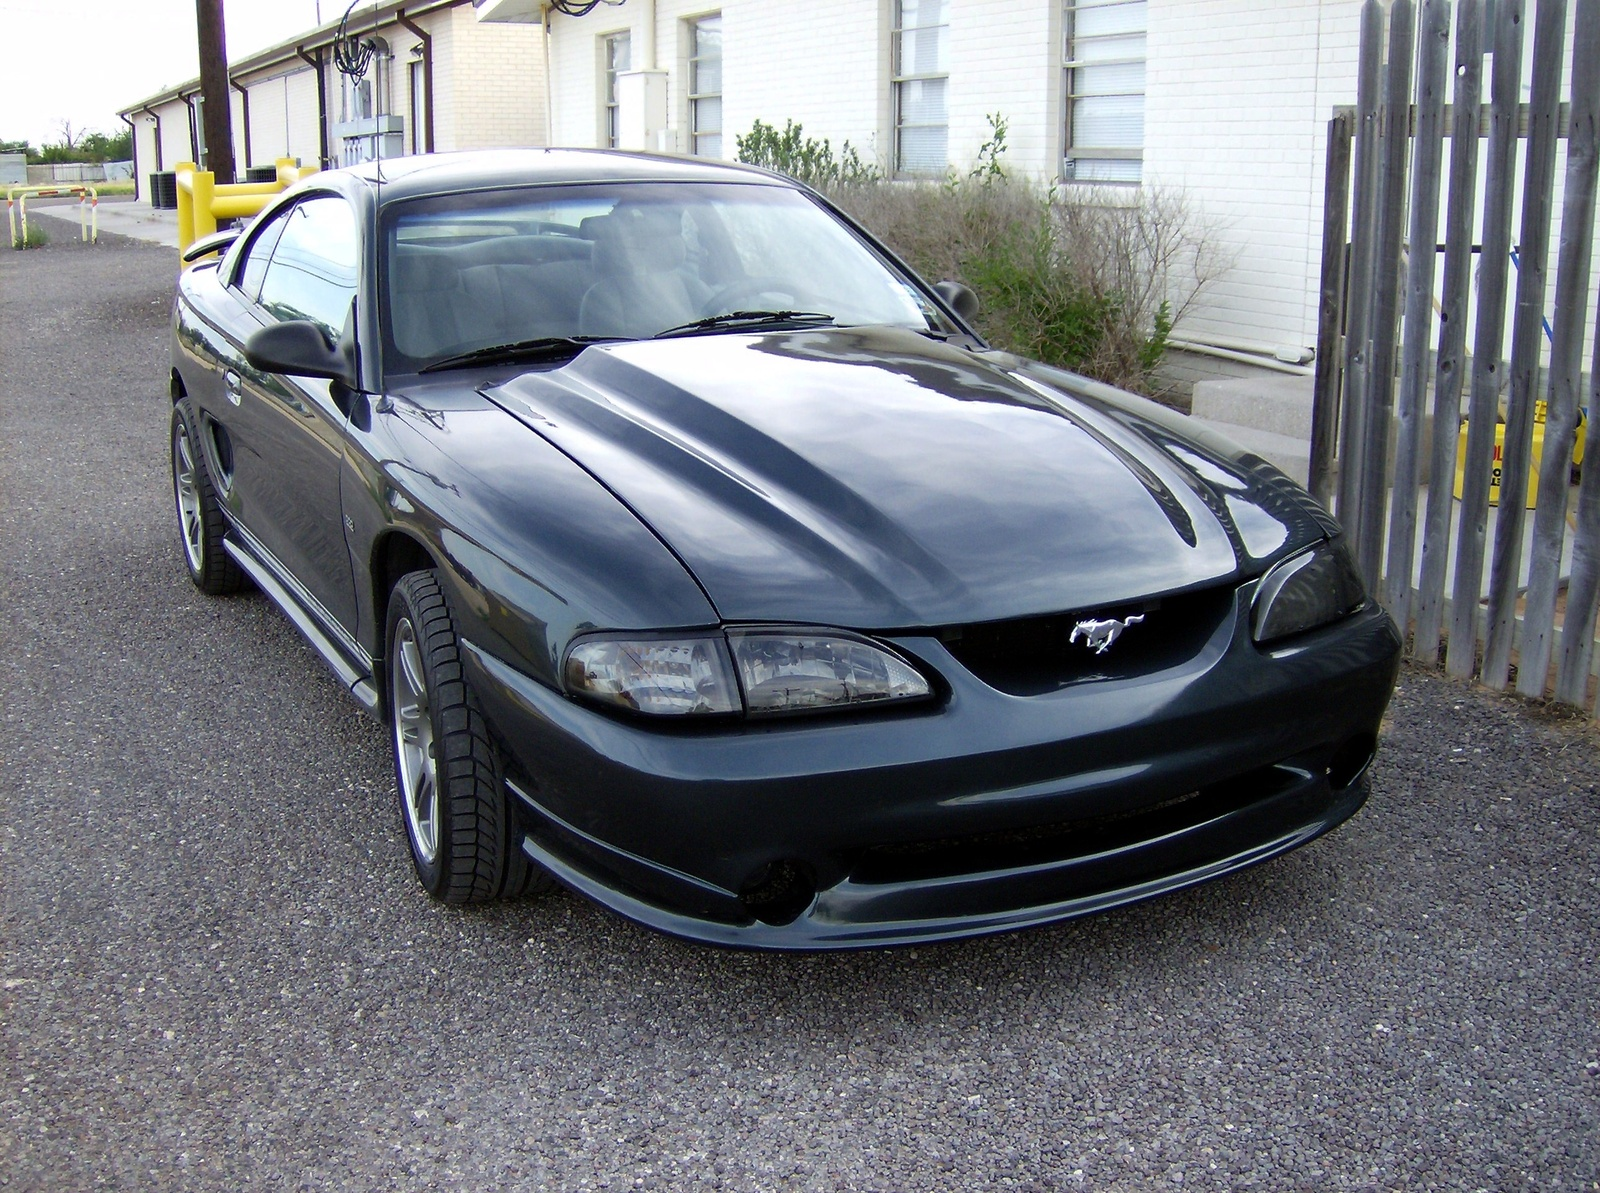 1998 Ford Mustang 2 Dr STD Coupe picture